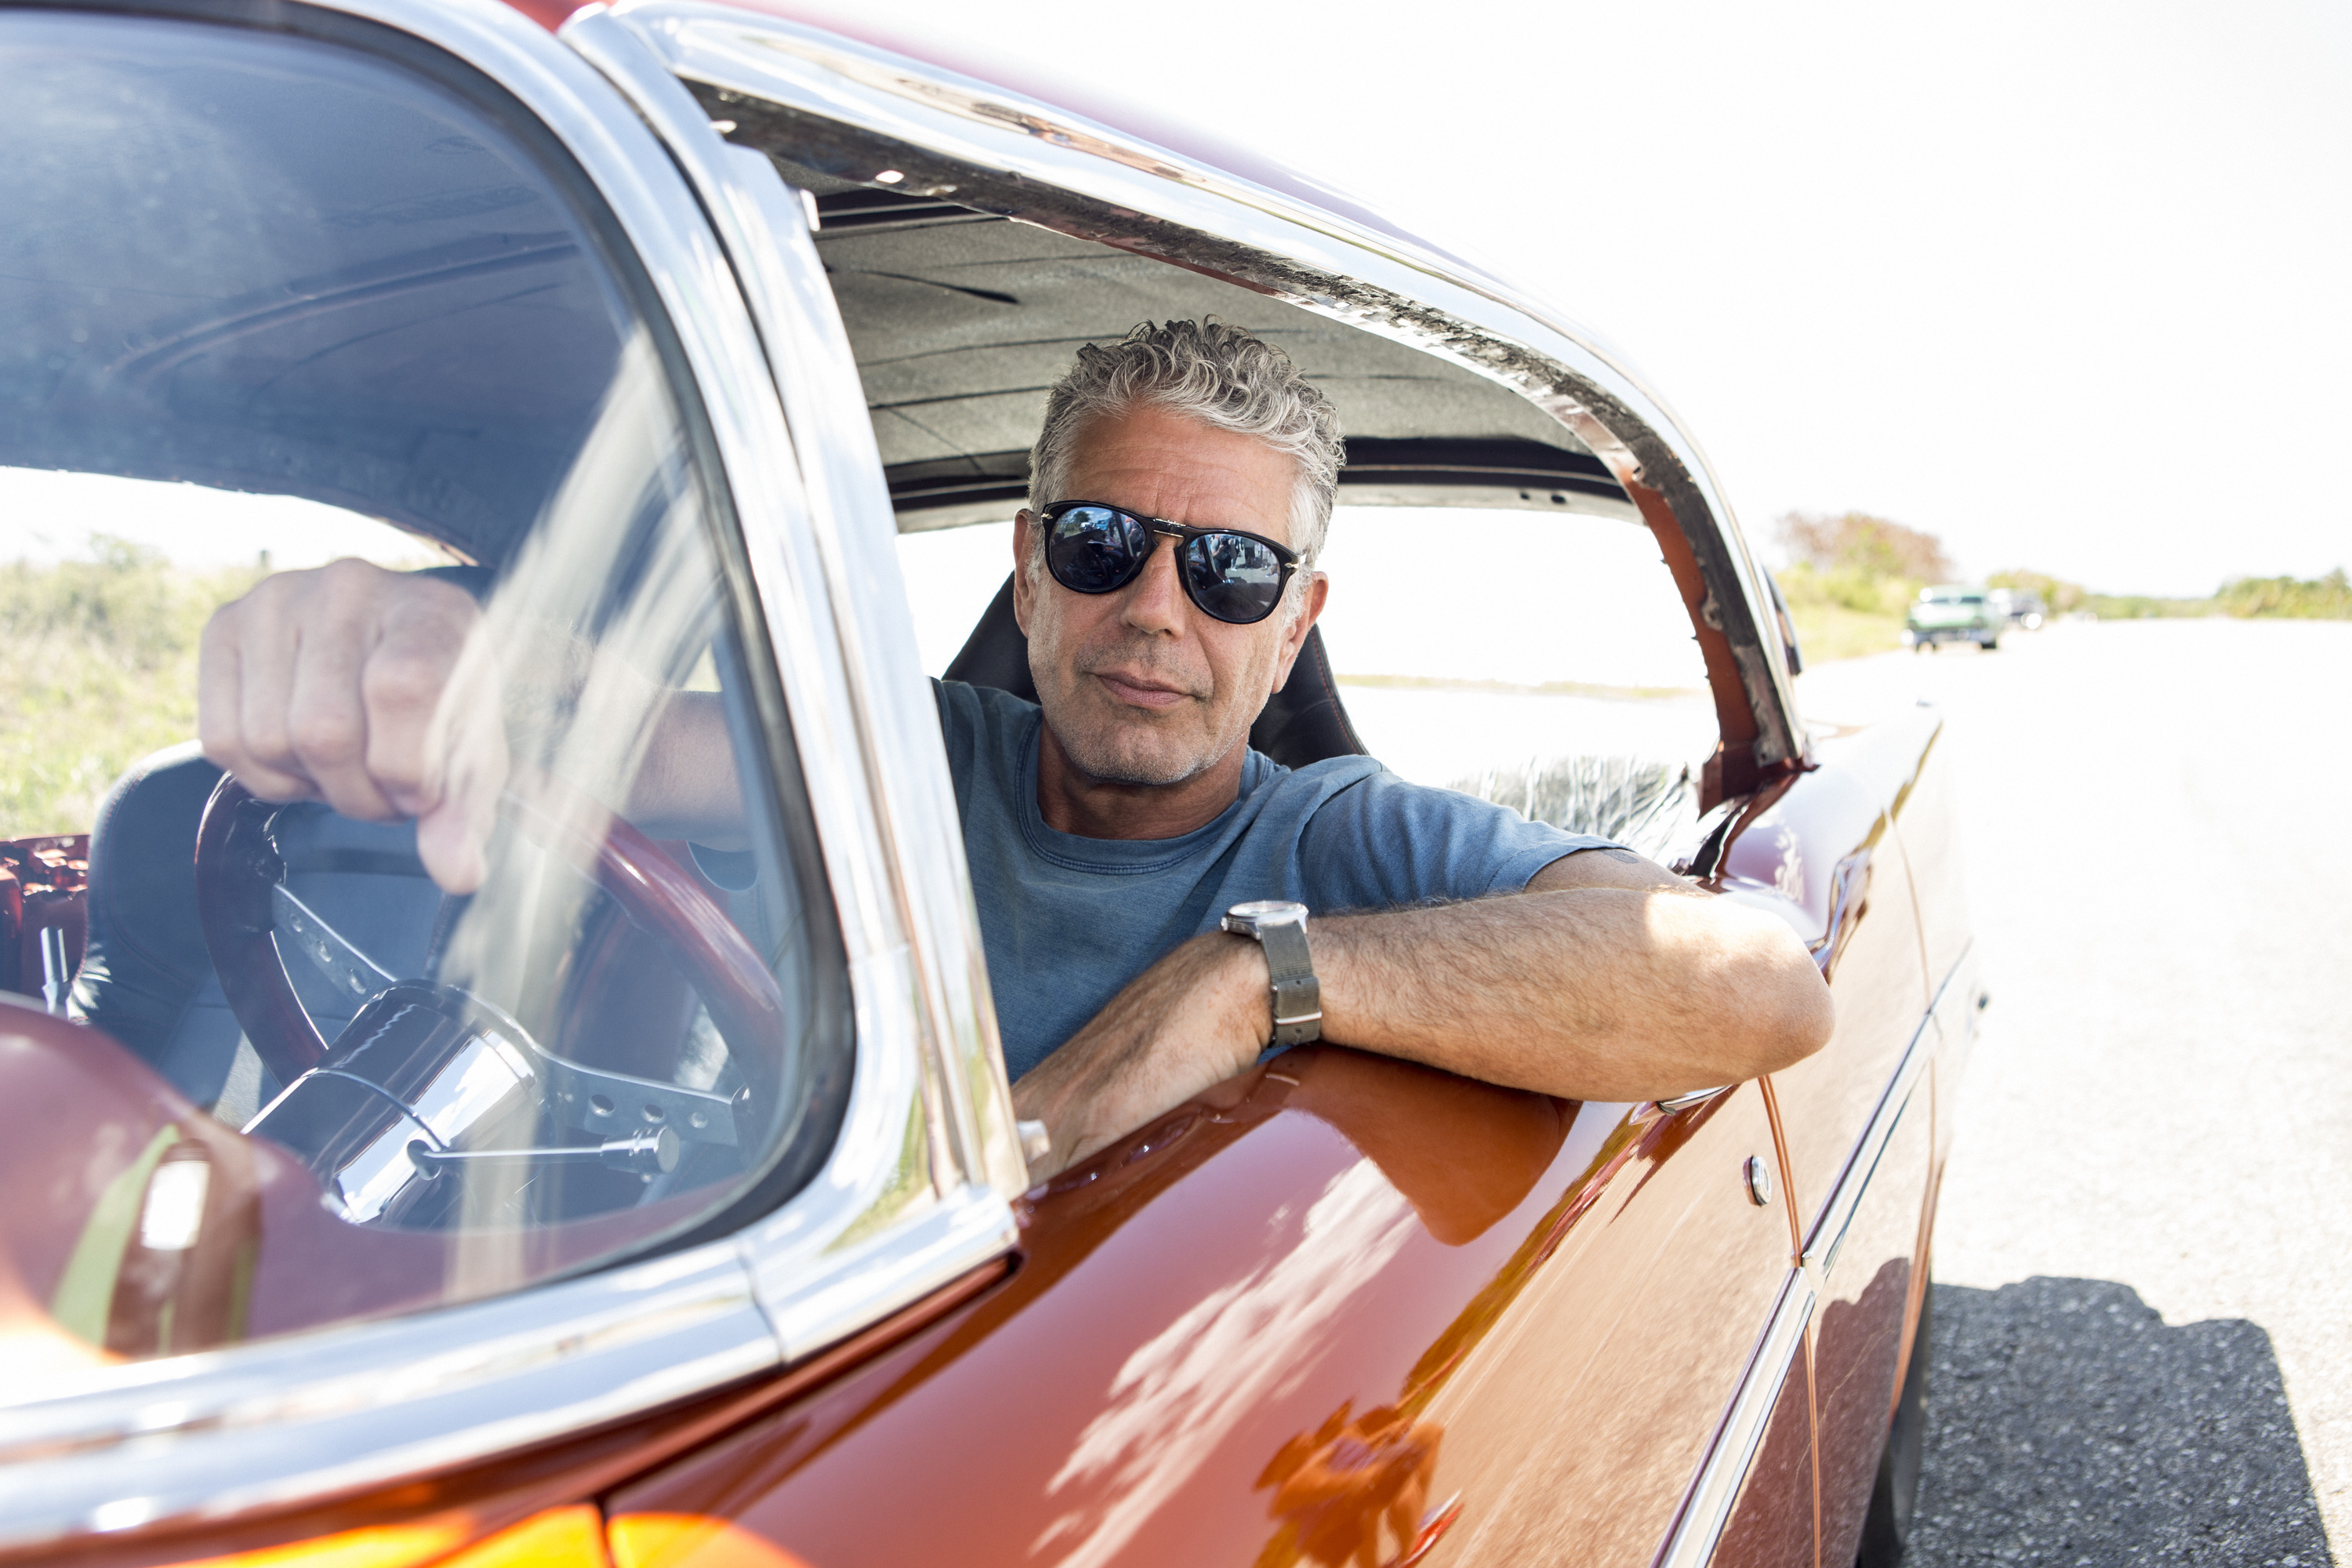 Anthony Bourdain Hits Up Cuba on Season 6 Premiere of 'Parts Unknown'